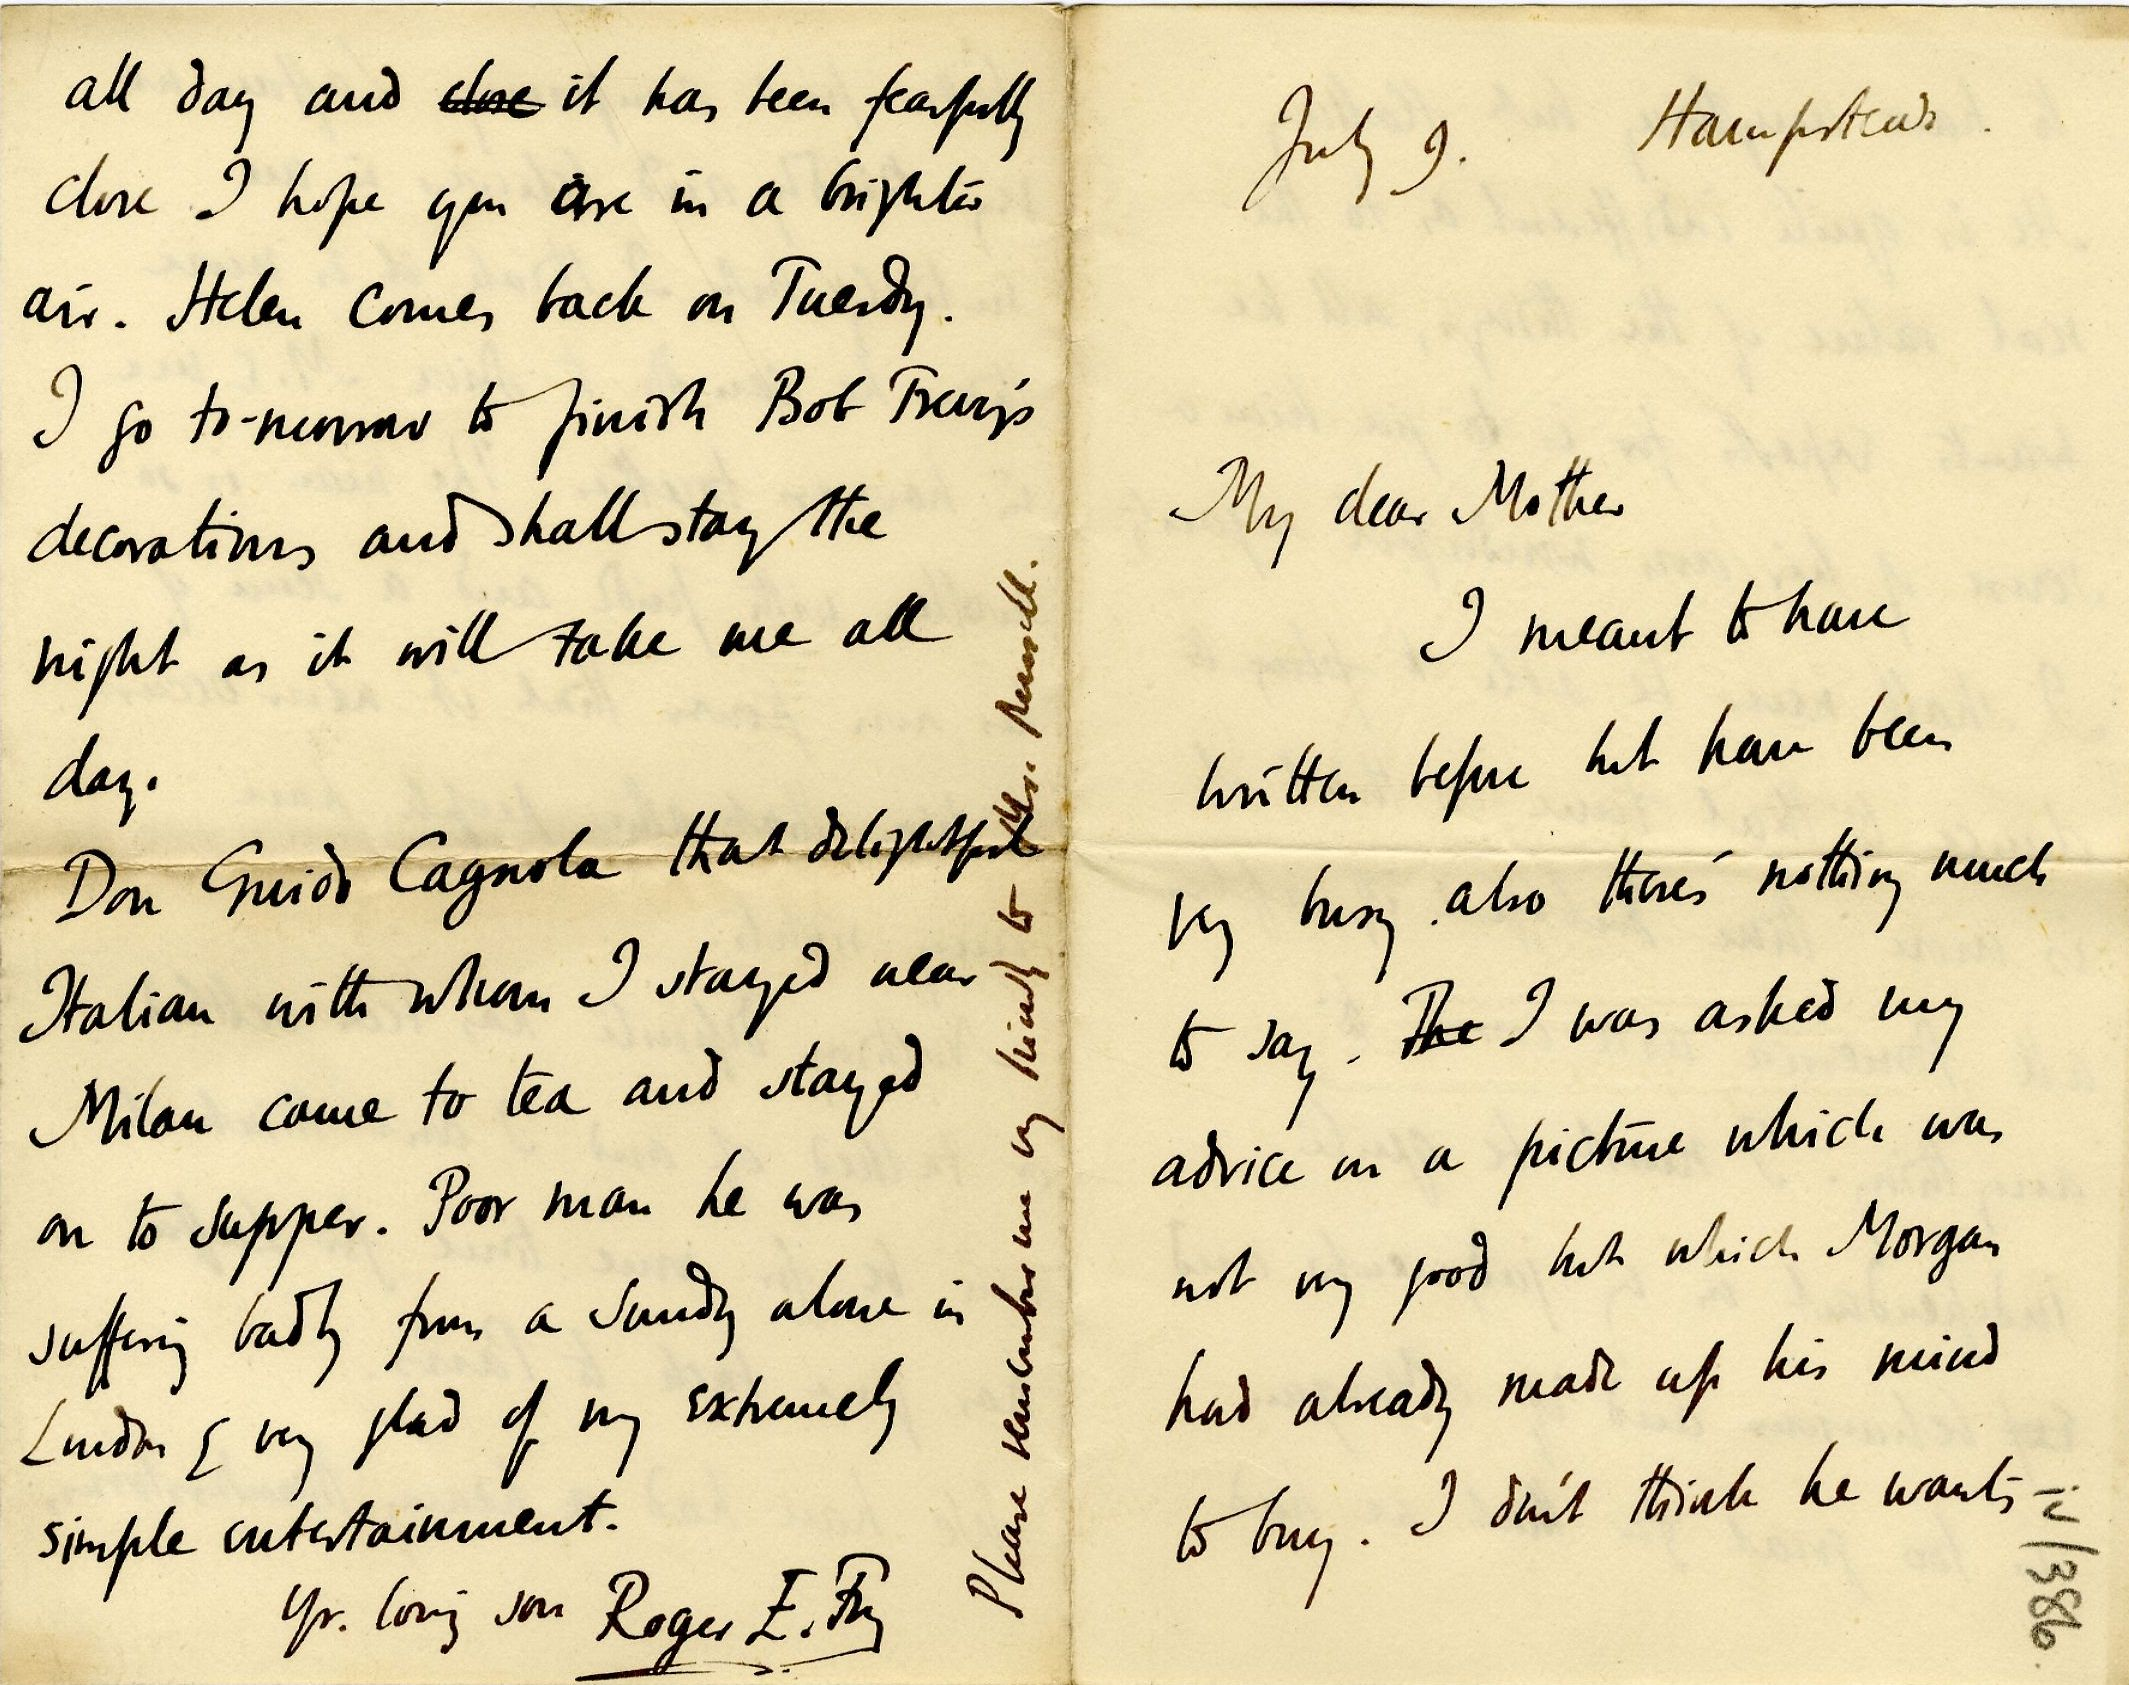 Letter from Roger Fry to Lady Fry, [1905], concerning J.P. Morgan. [REF/3/57/35]